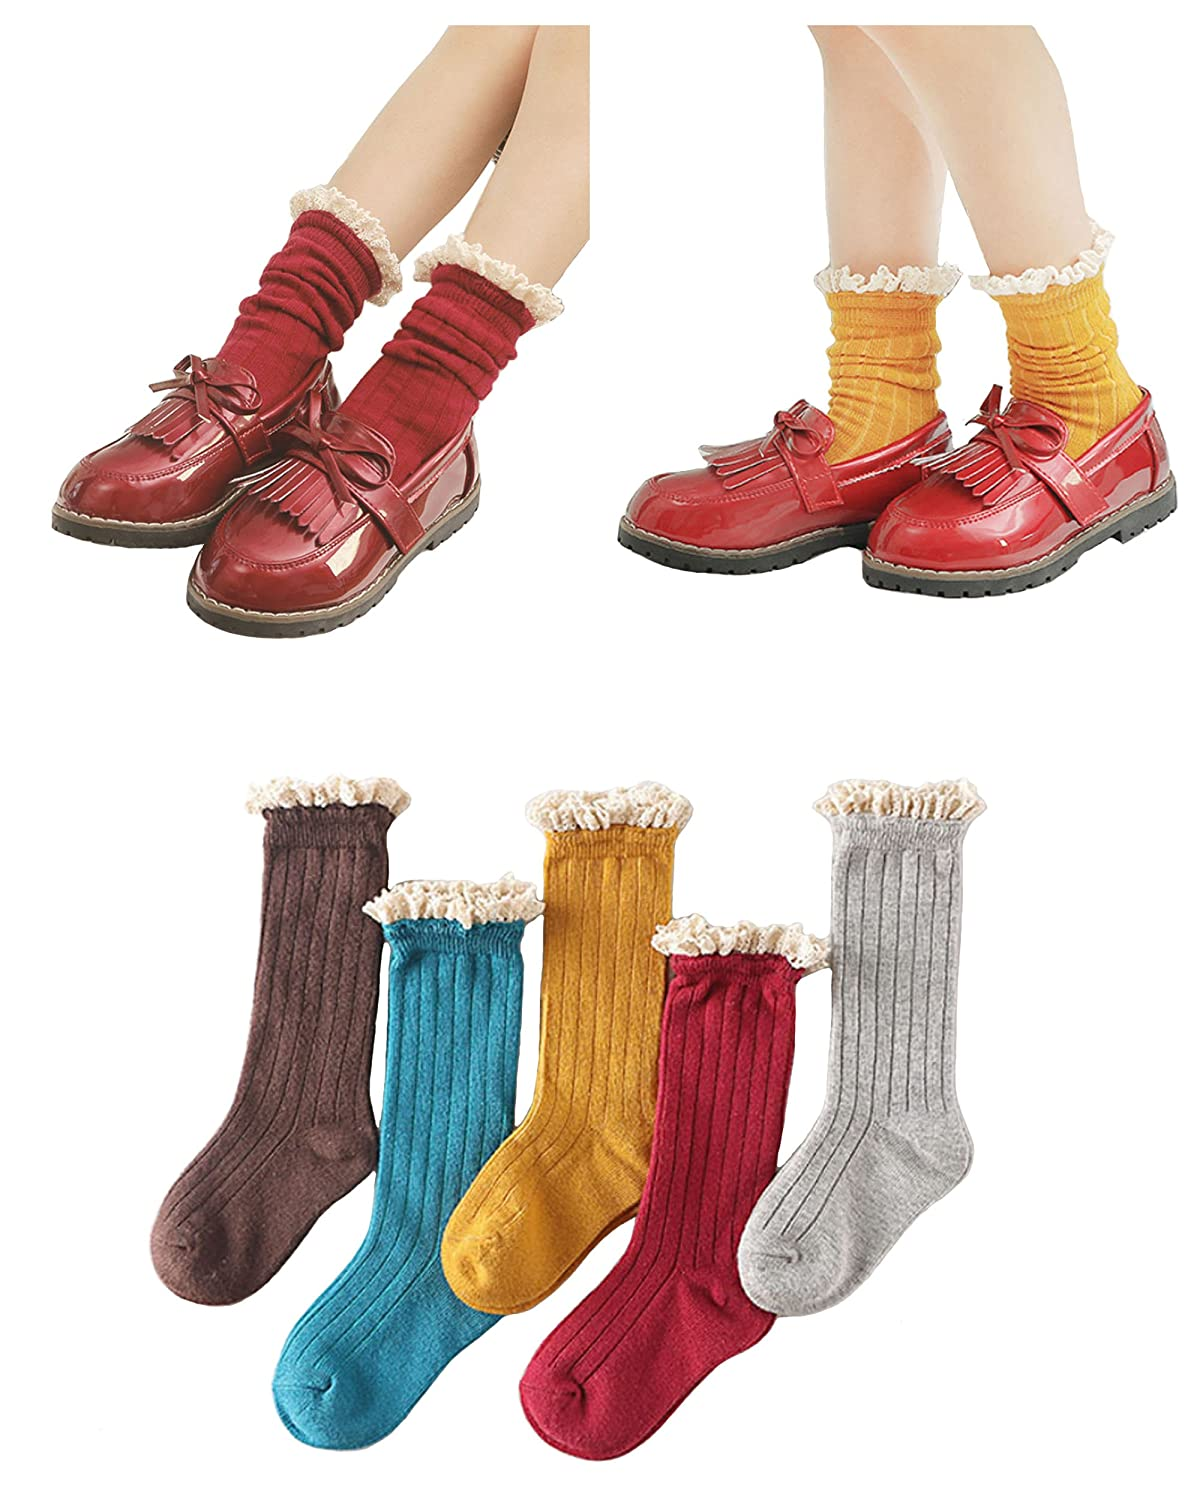 3c343058ce0 Amazon.com  5 Pack Girls Sweet Socks Lace Trim Cotton Knit Footed Leg Boot  Stocking By Eilin  Clothing